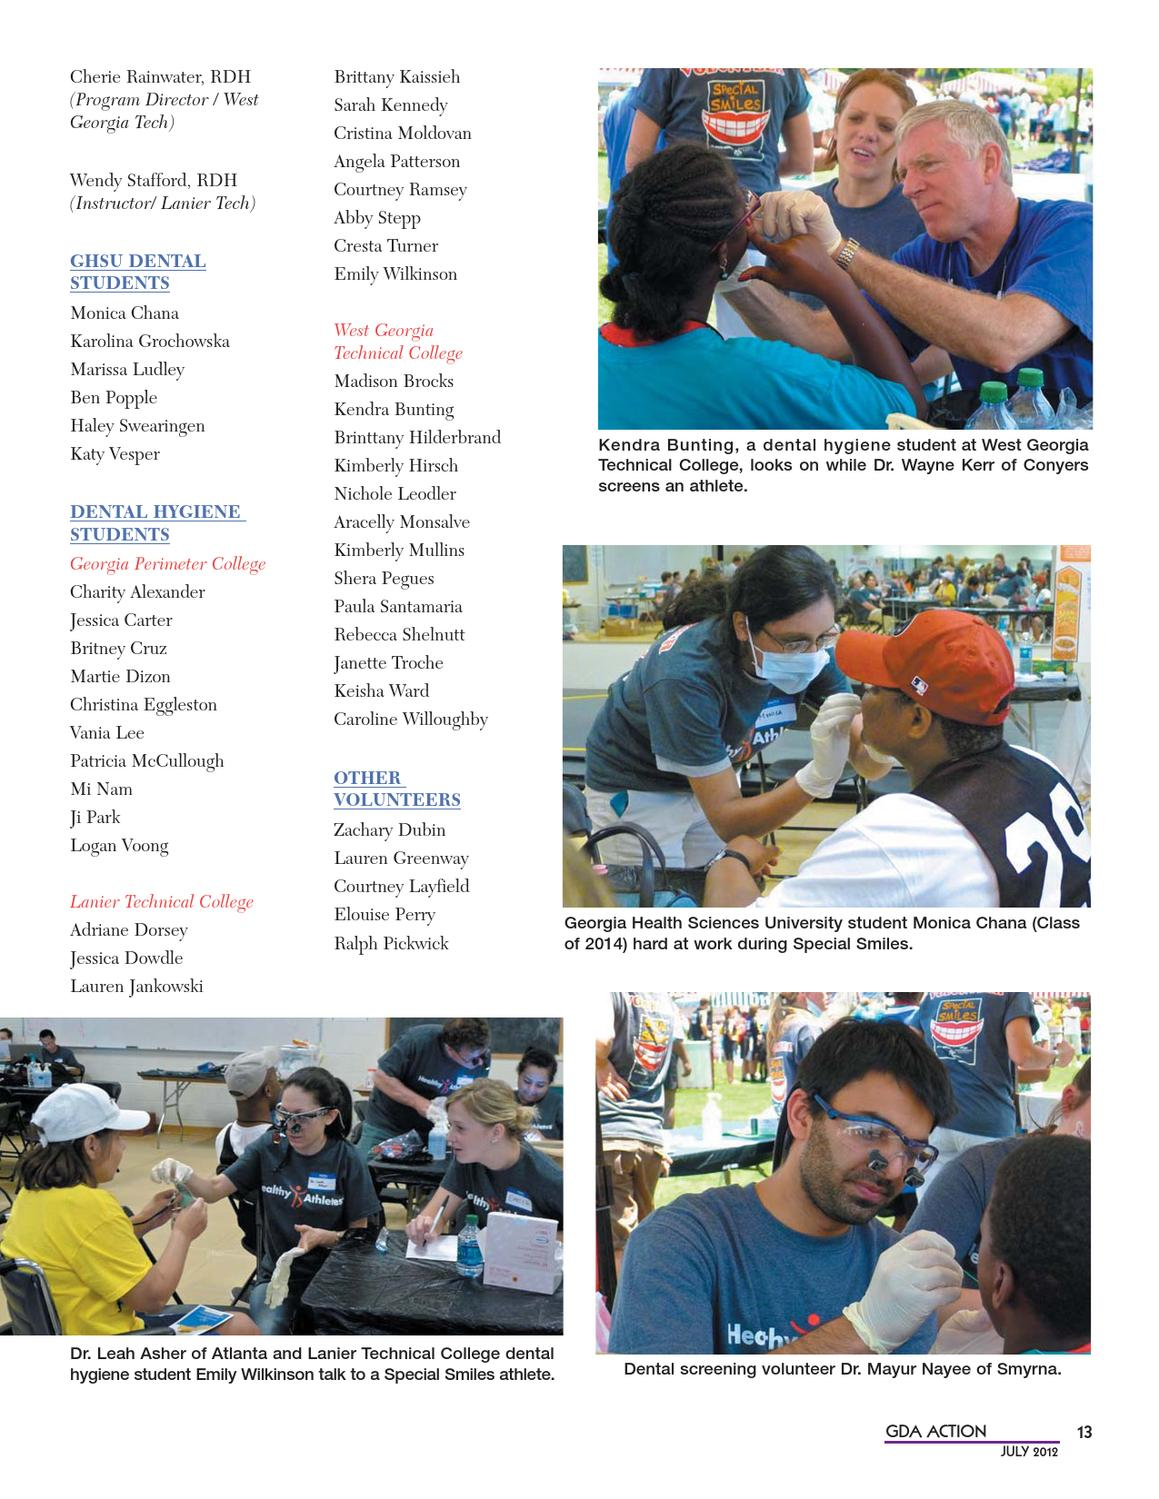 Gda Action July 2012 By Delaine Hall Issuu